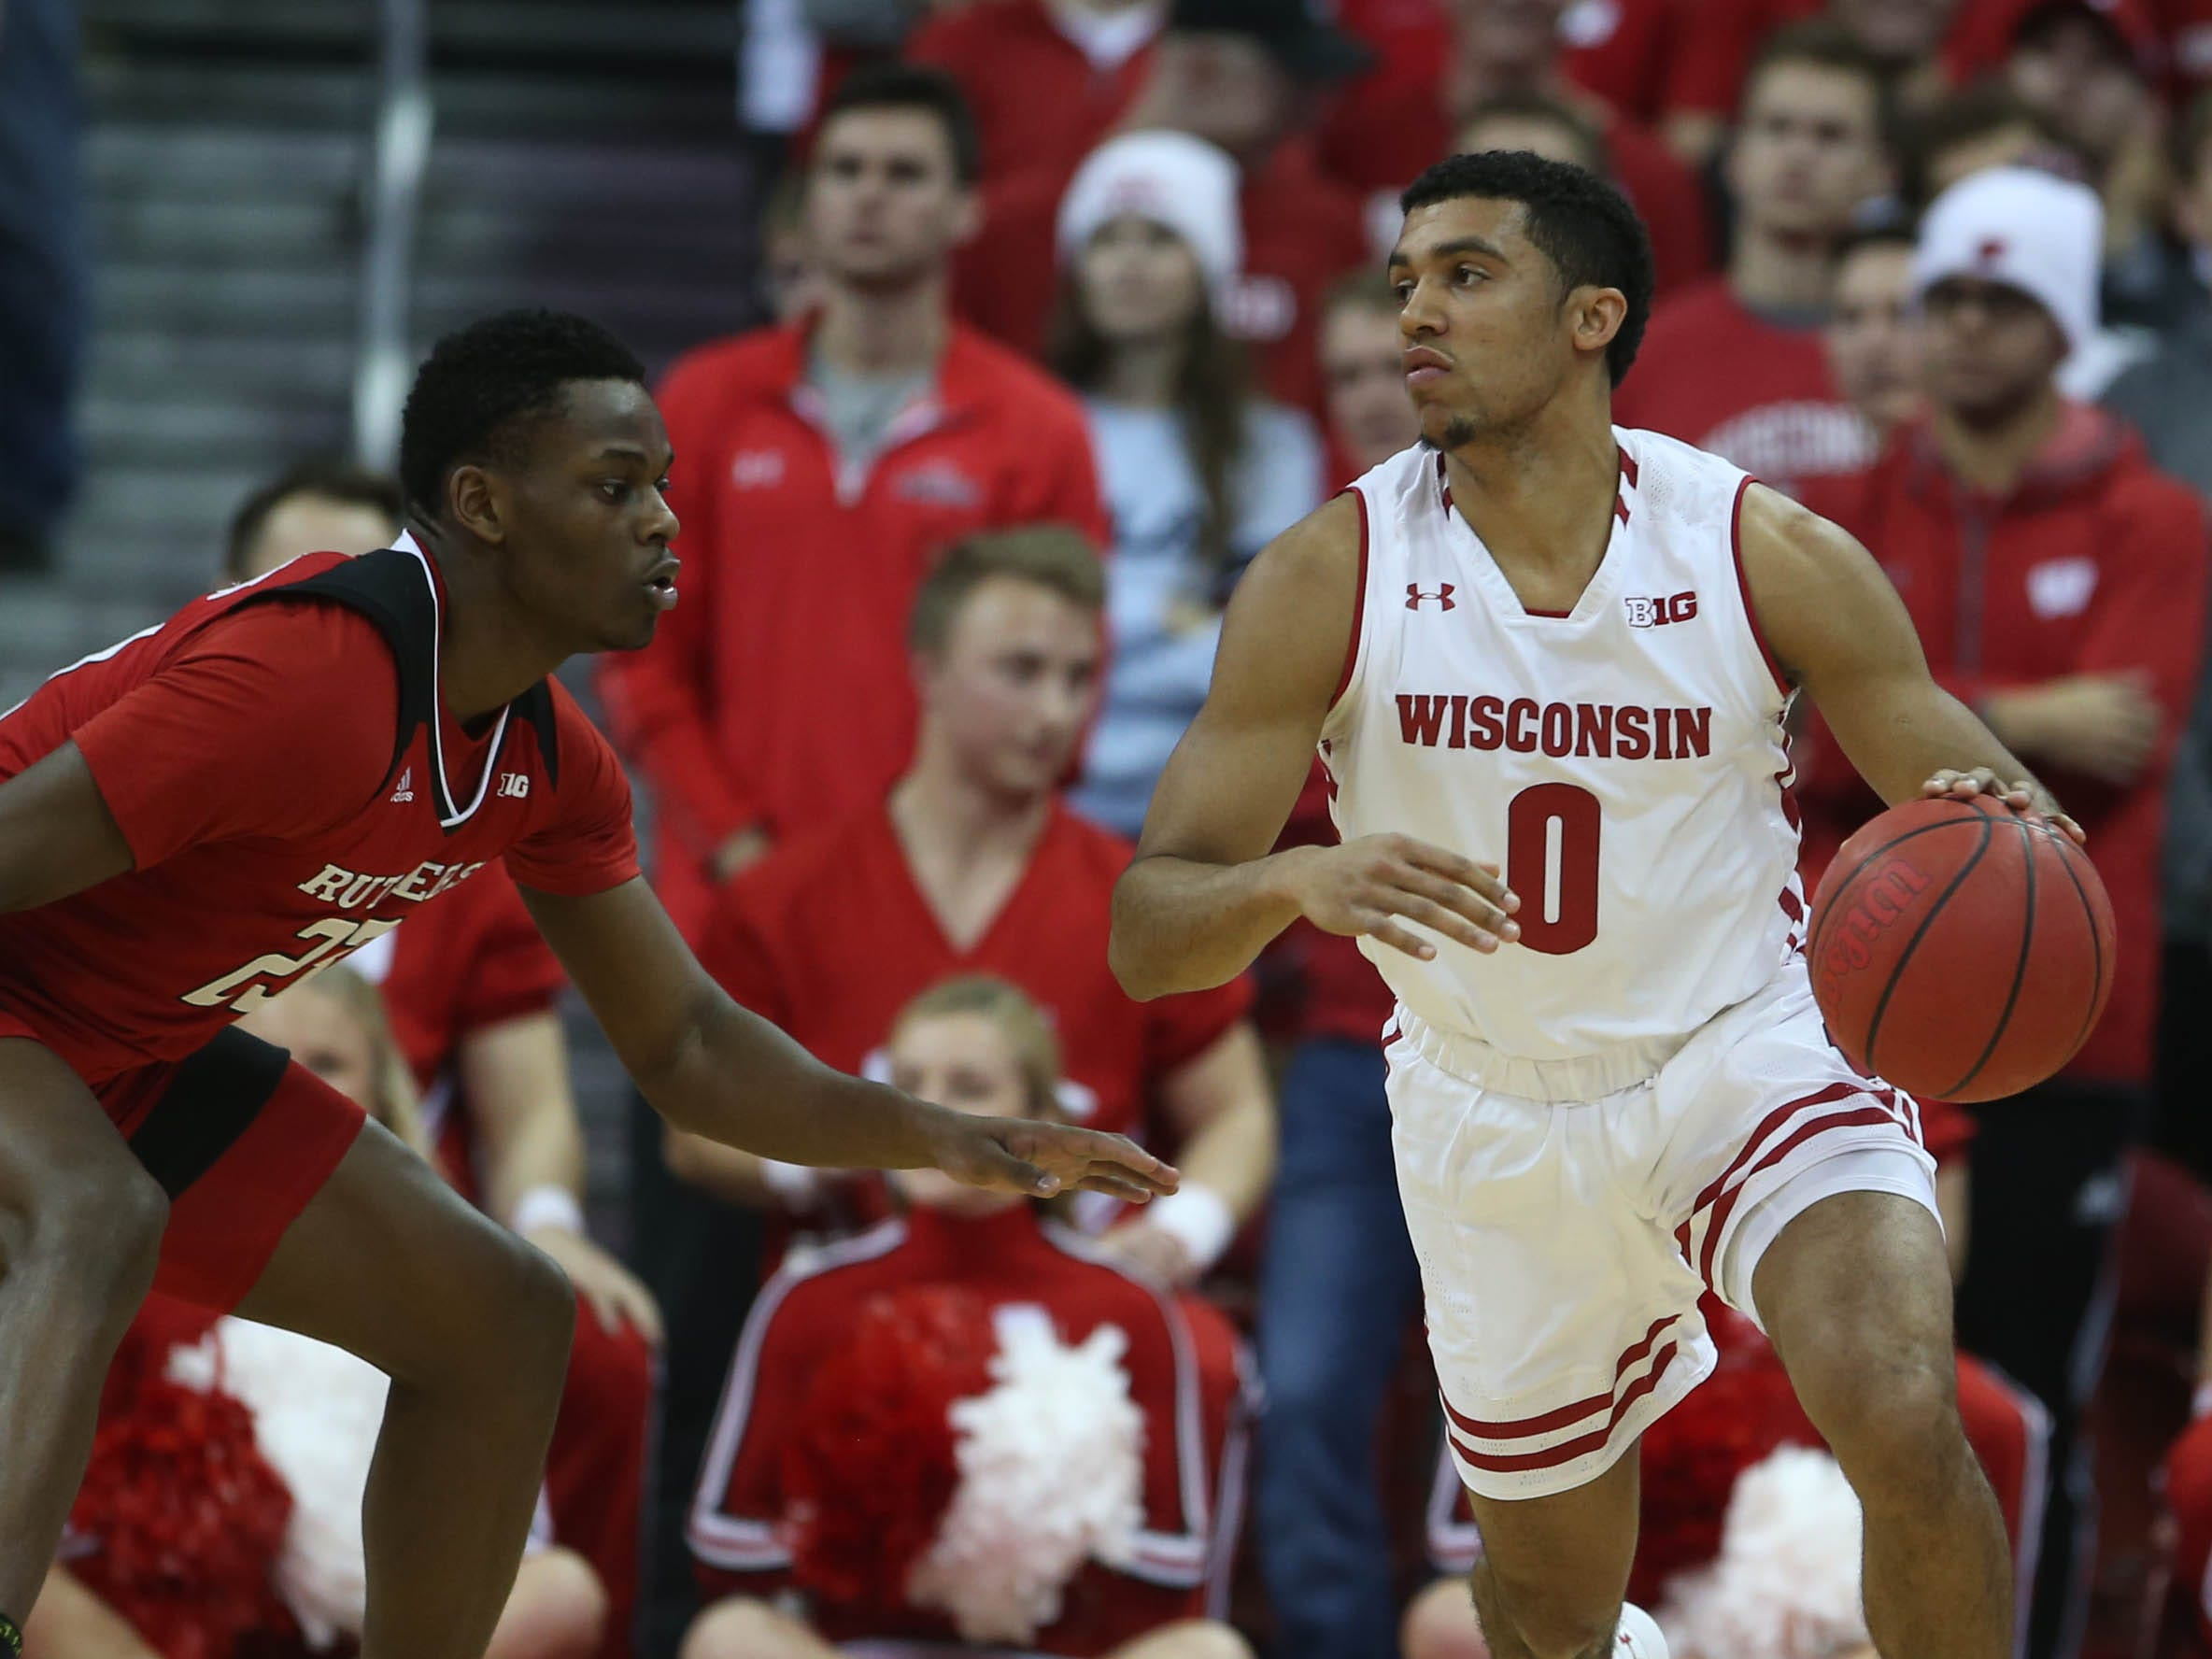 Wisconsin point guard D'Mitrik Trice scans the court as he dribbles against Rutgers guard Montez Mathis during the first half.